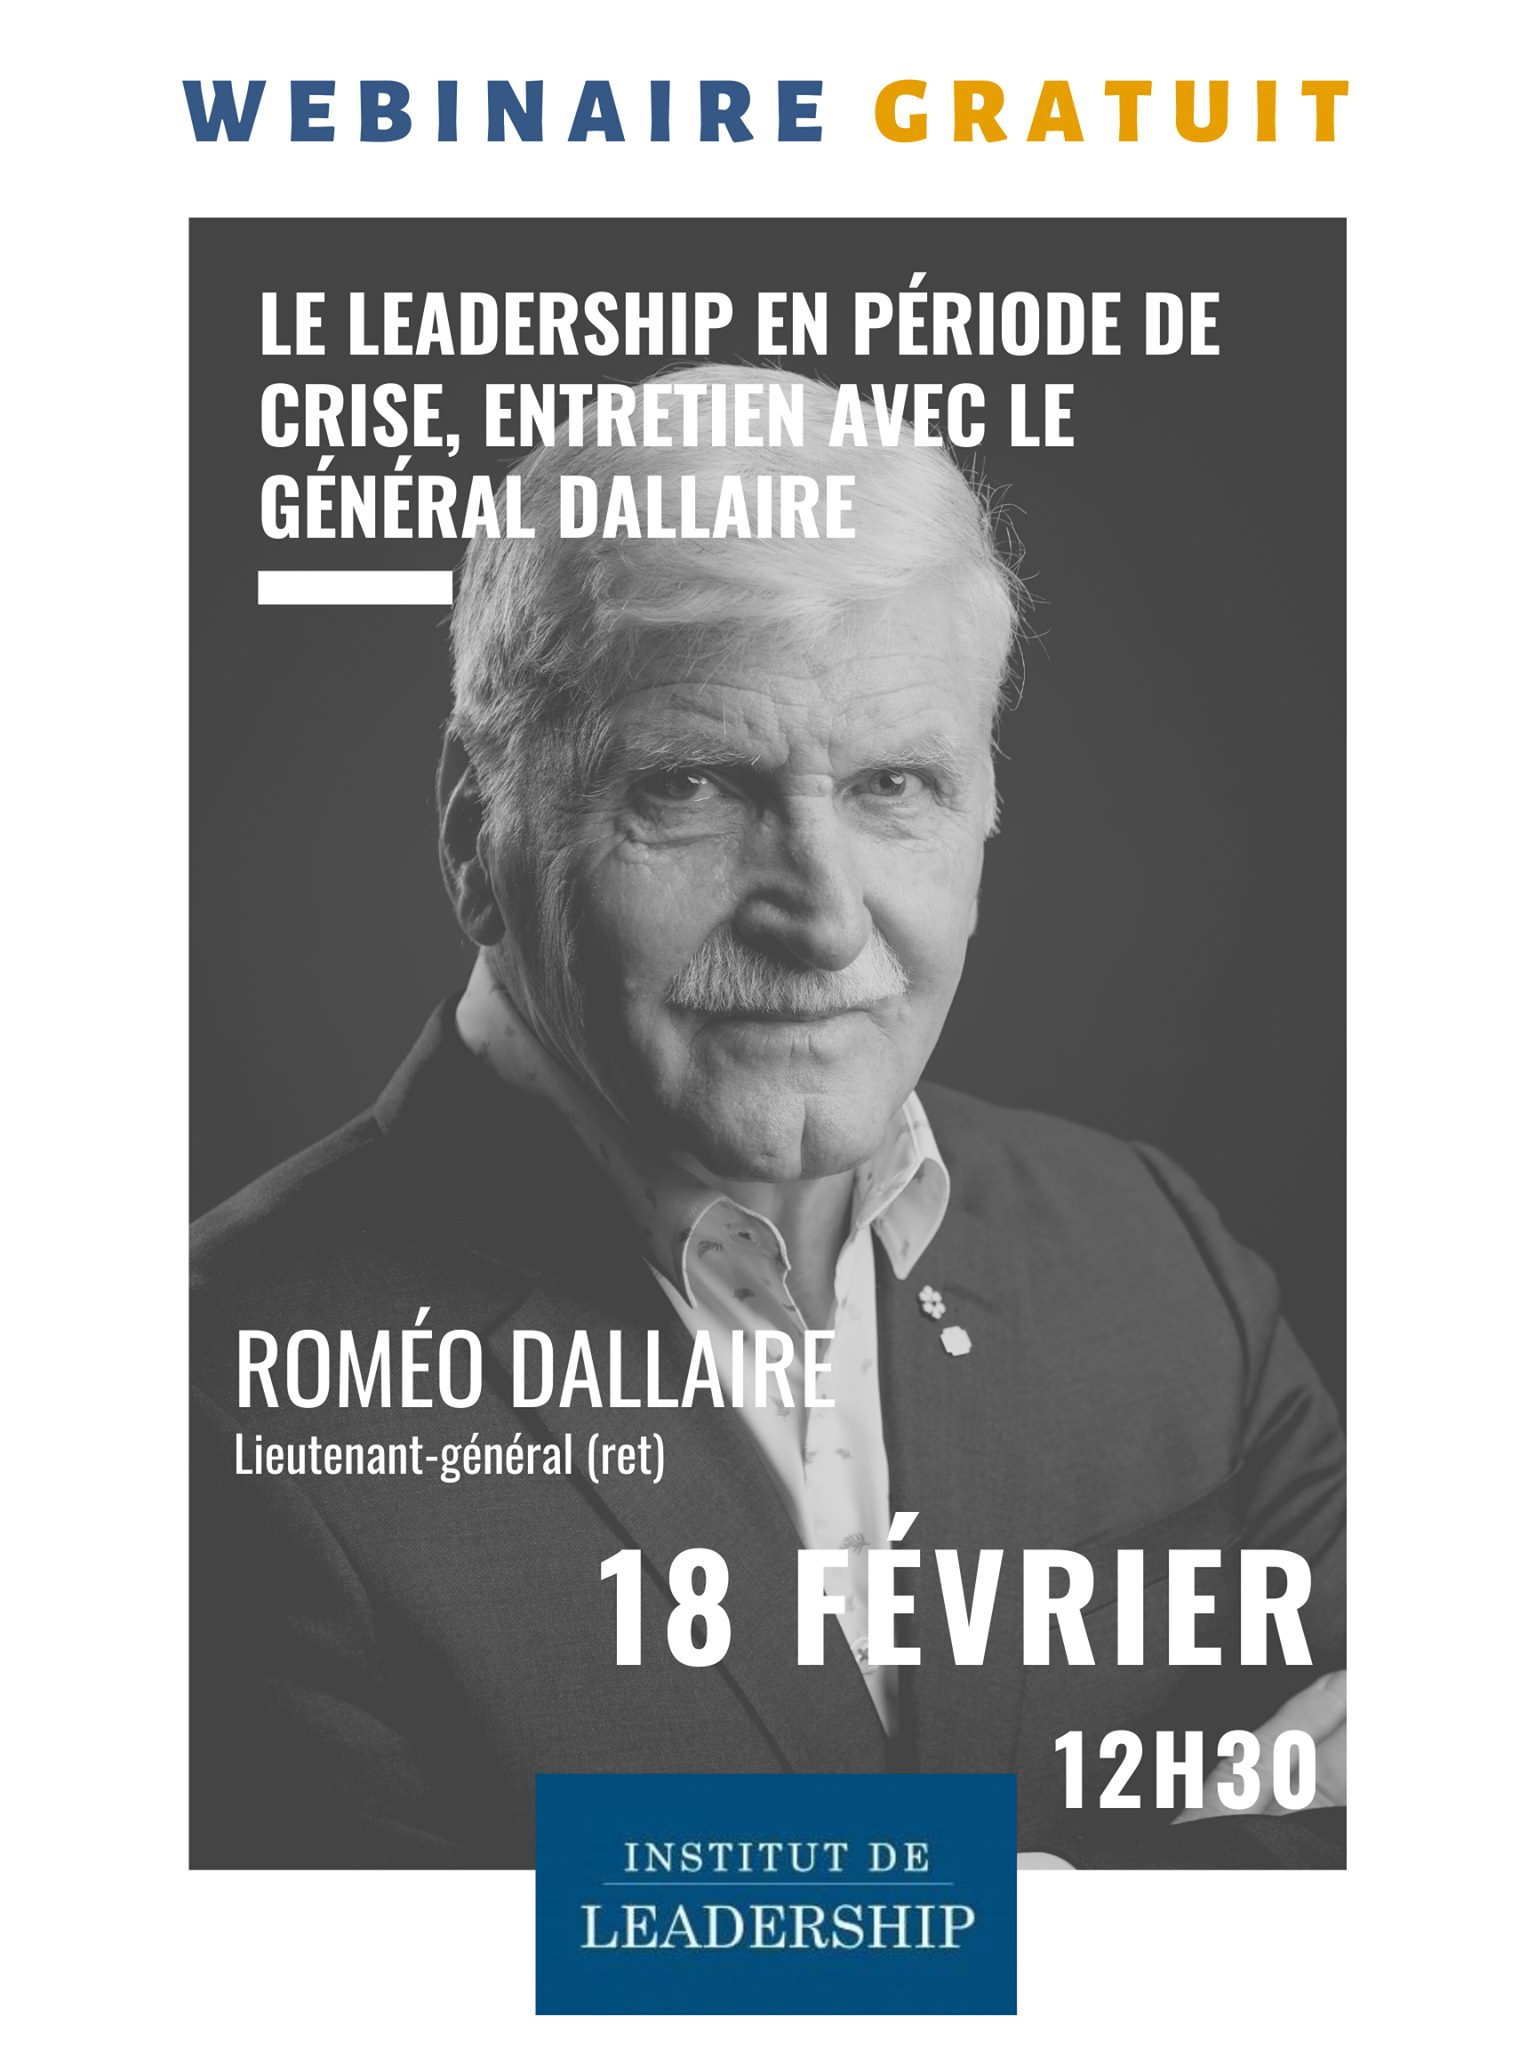 Leadership en période de crise, entretien avec le général Dallaire reviews, opinions and consumer feedback